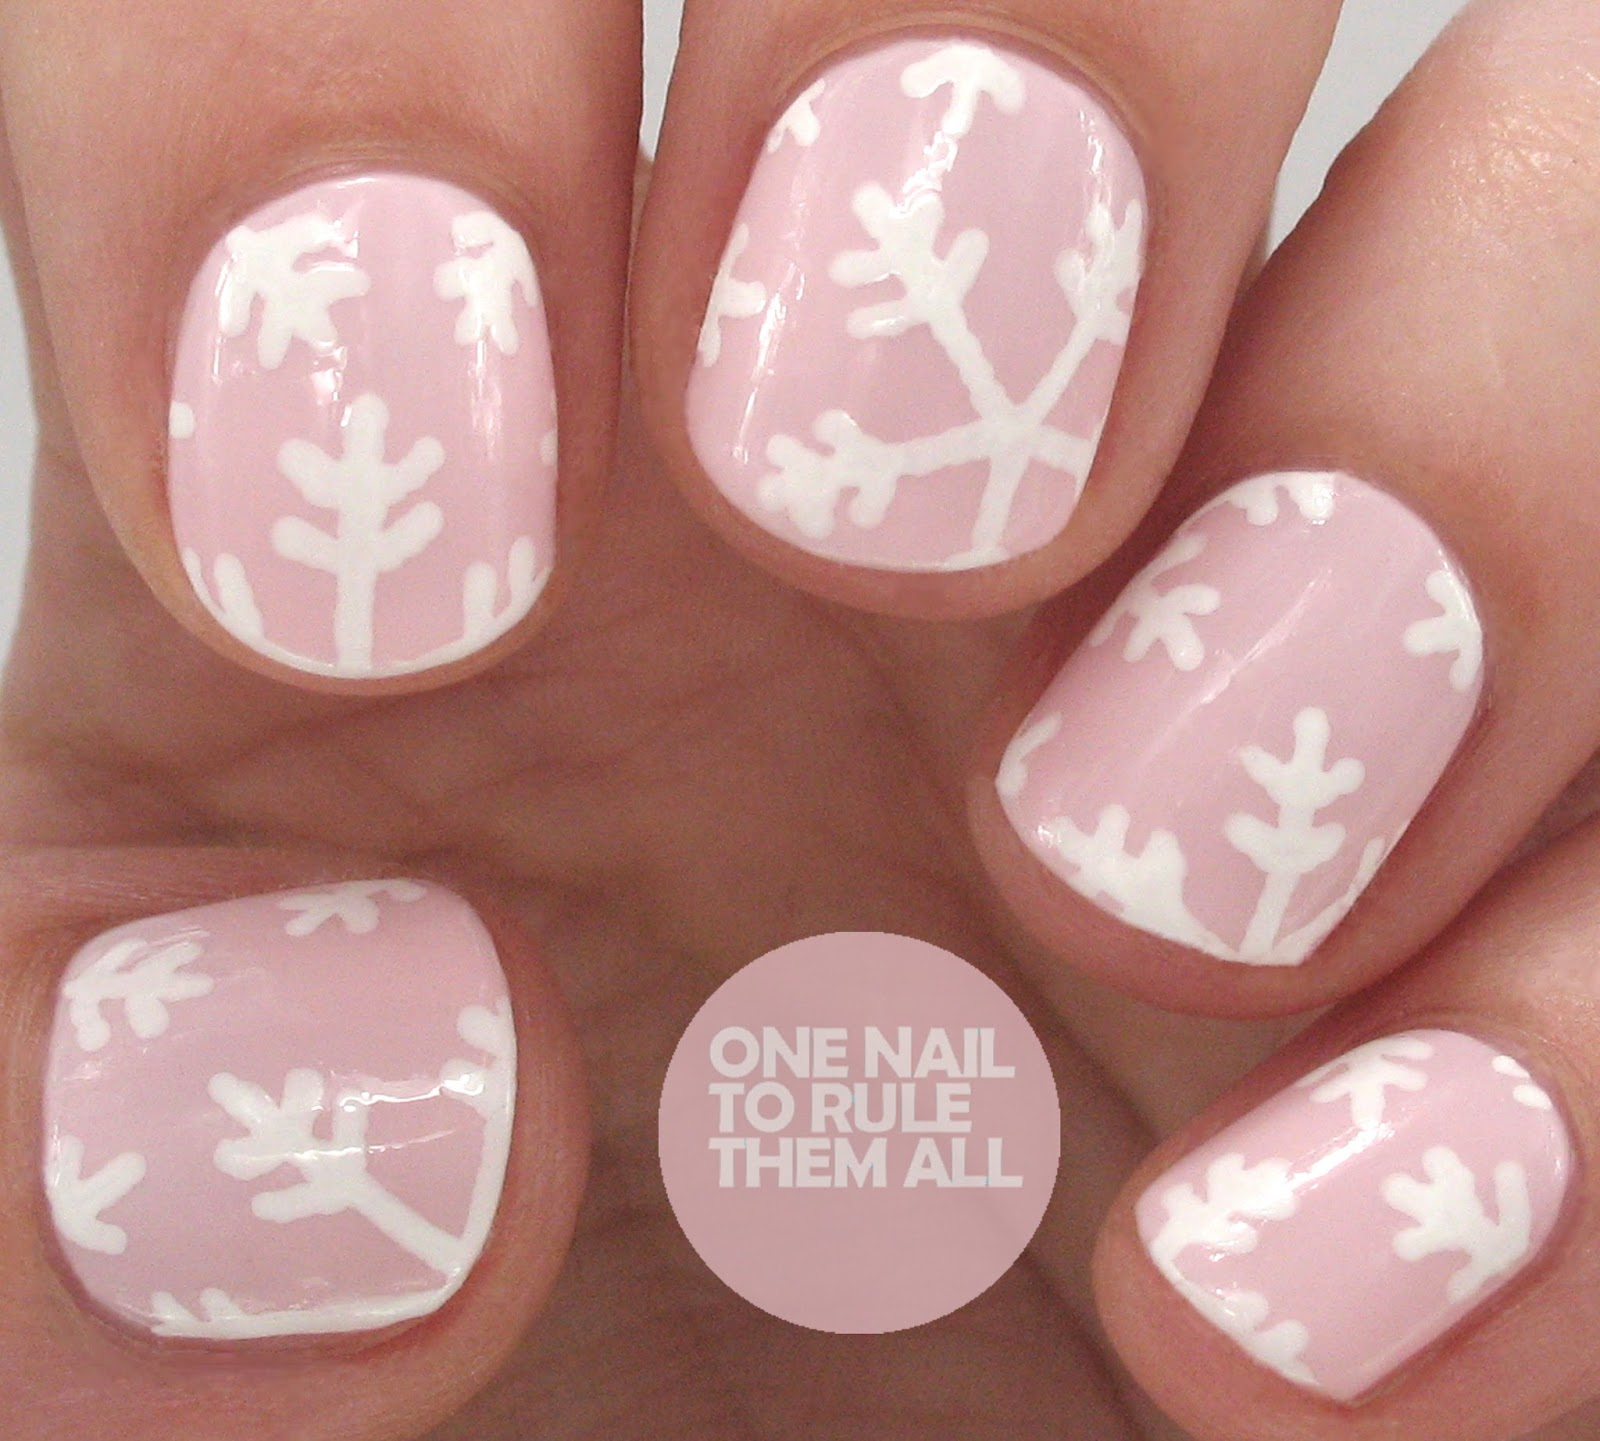 One Nail To Rule Them All Barry M Nail Art Pens Review: One Nail To Rule Them All: Pink Snowflakes For Barry M